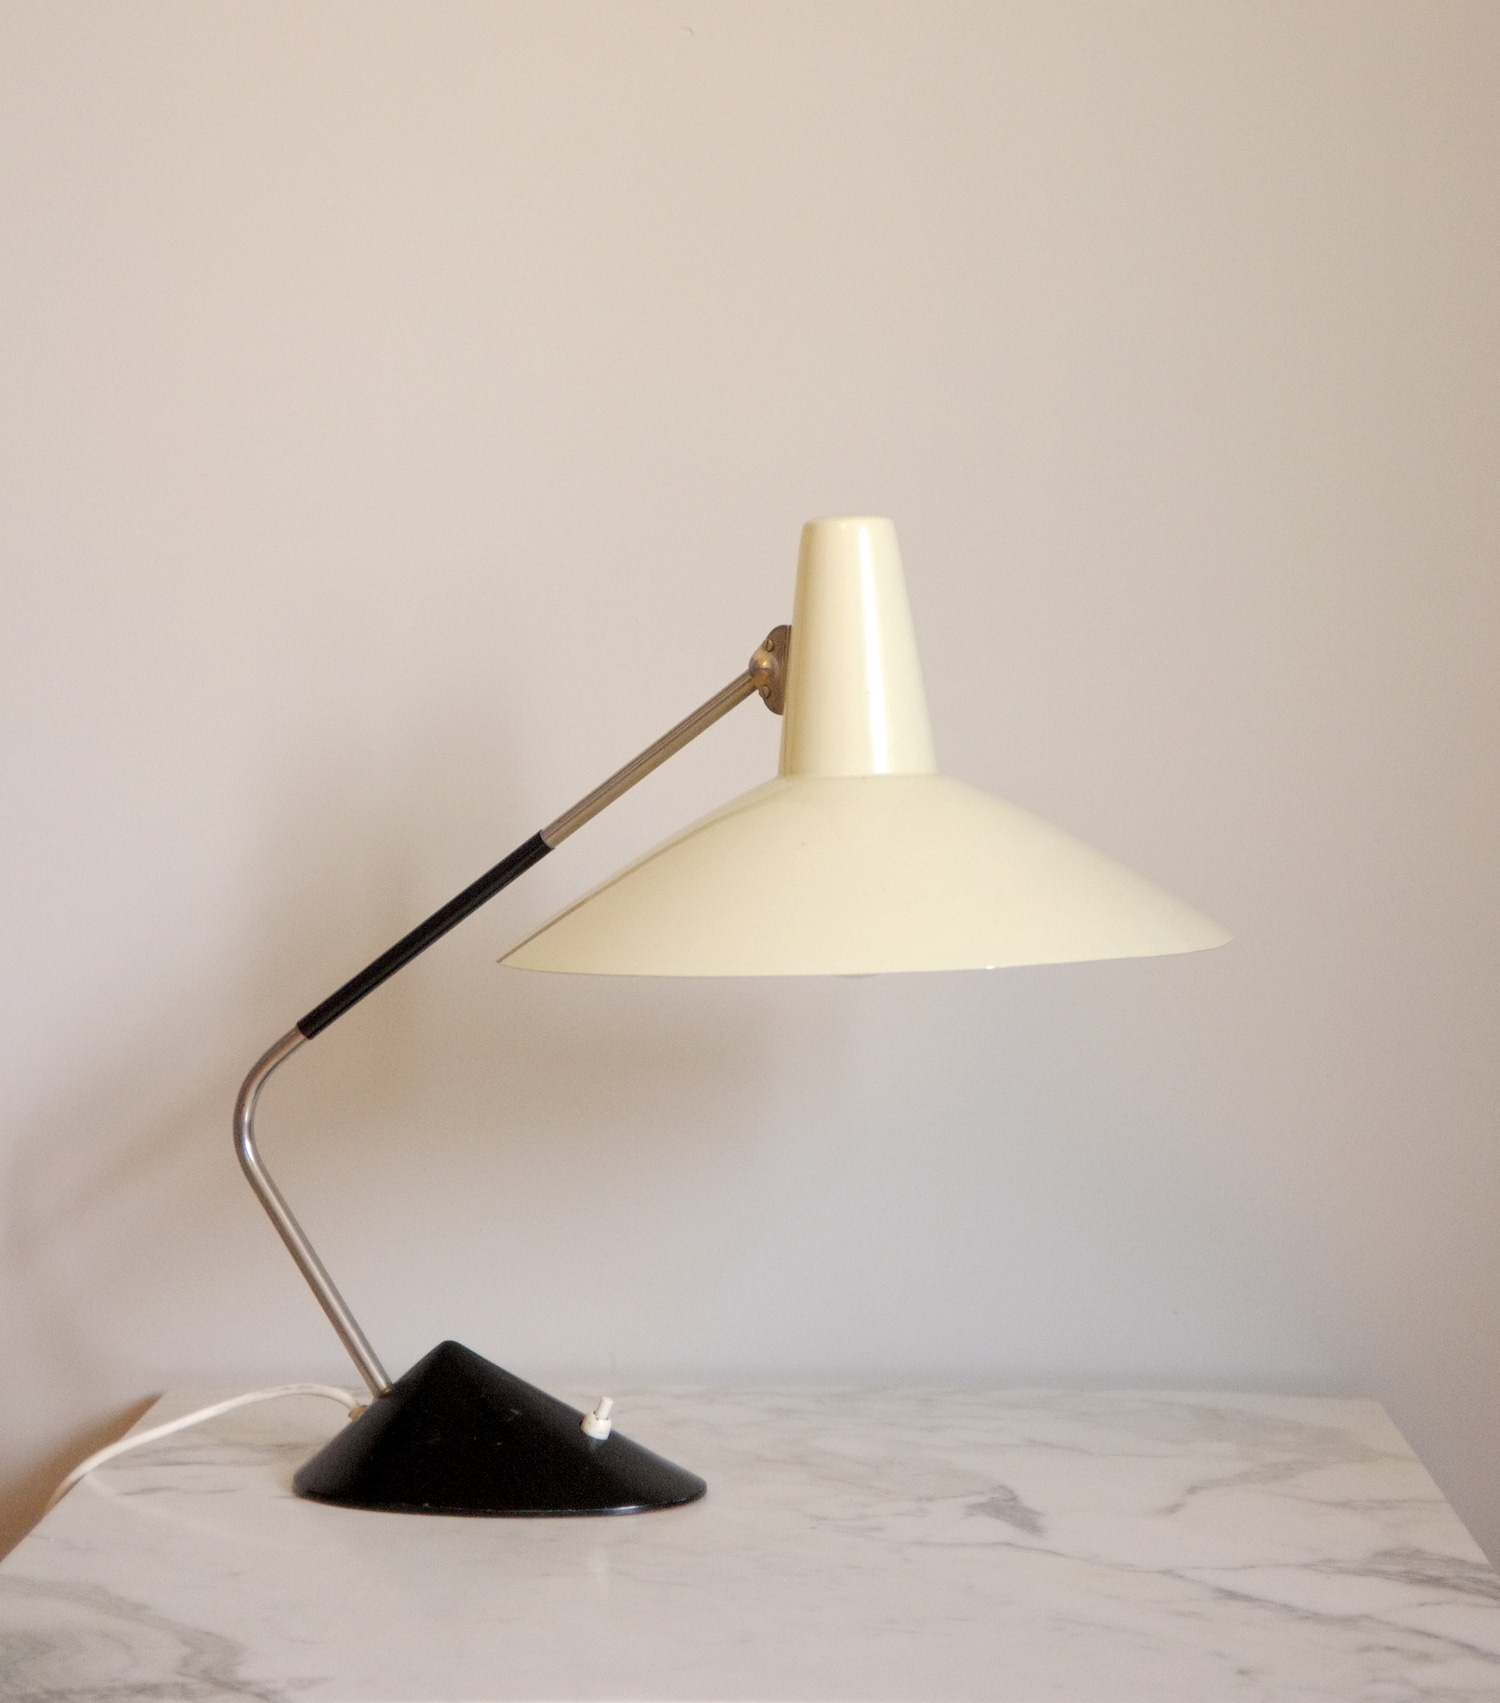 1950s/60s Table or desk lamp by Kaiser